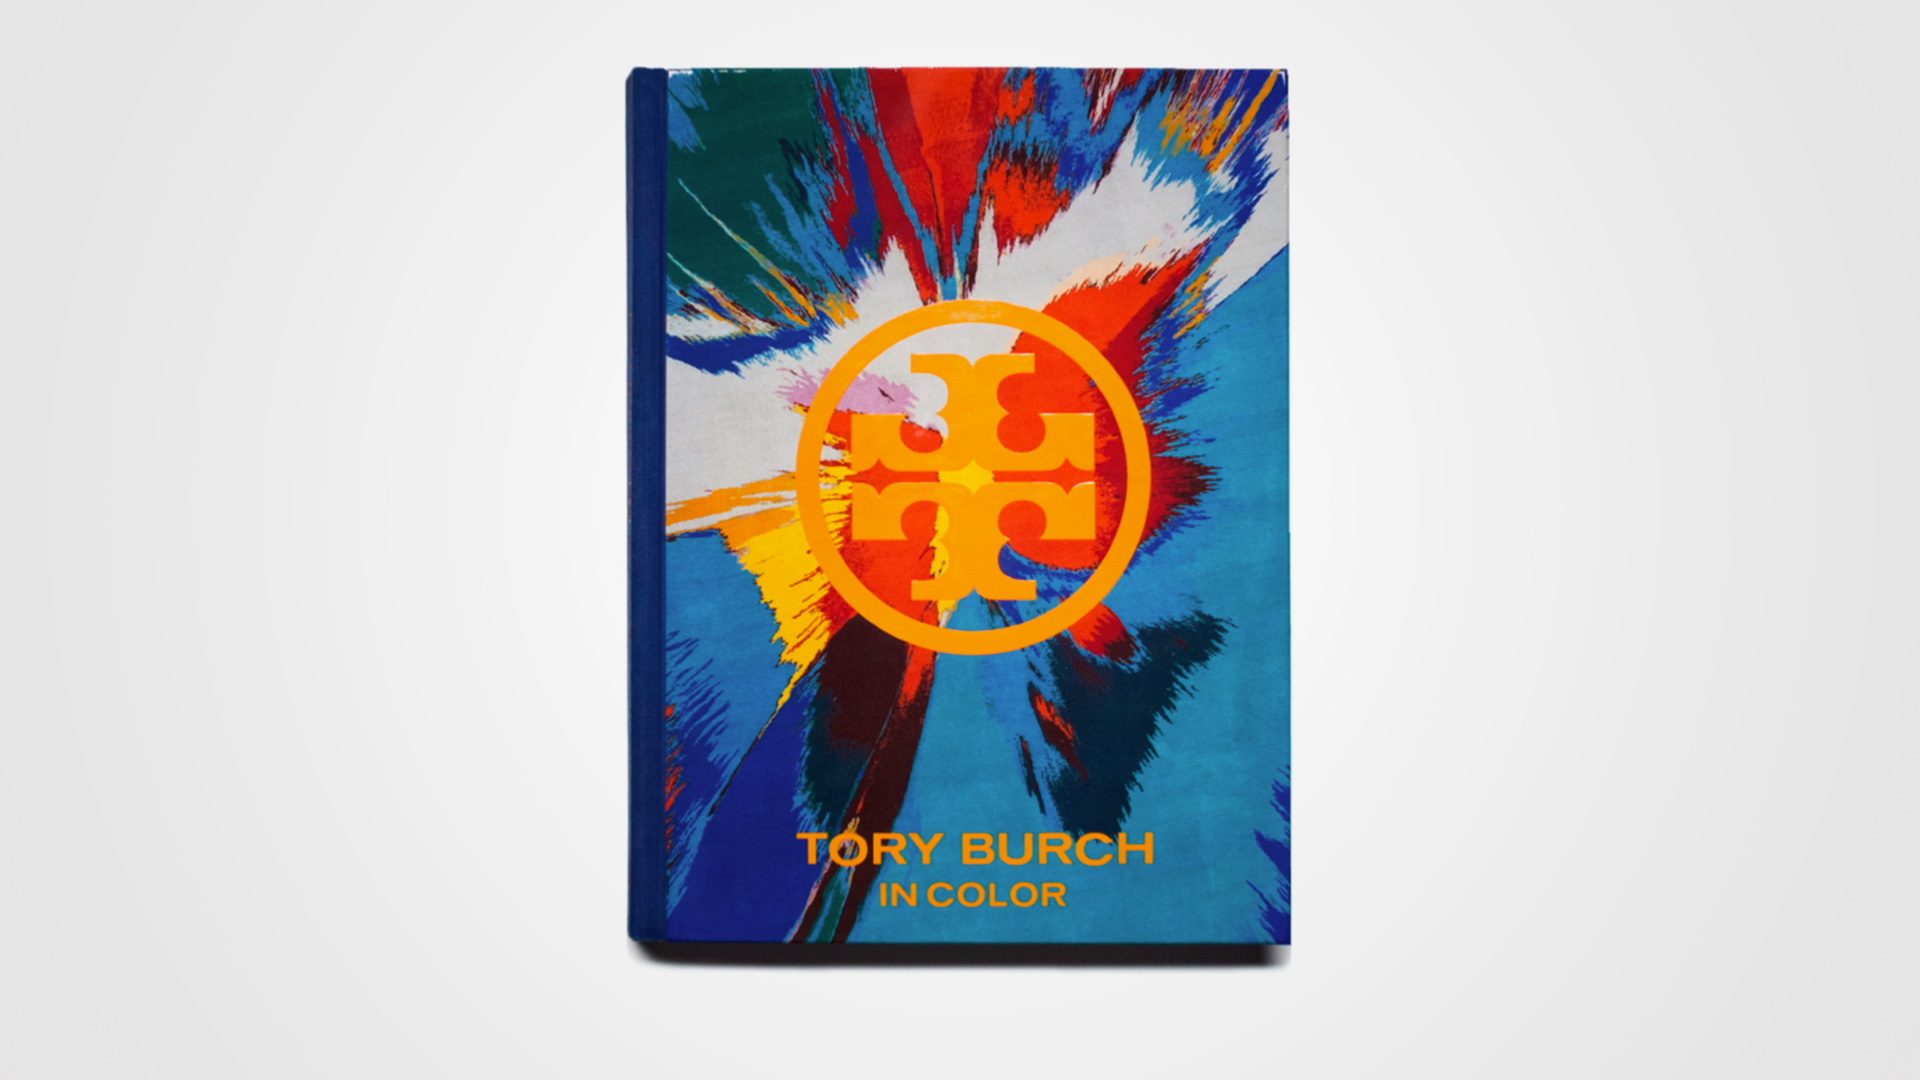 Tory Burch In Color: The Book